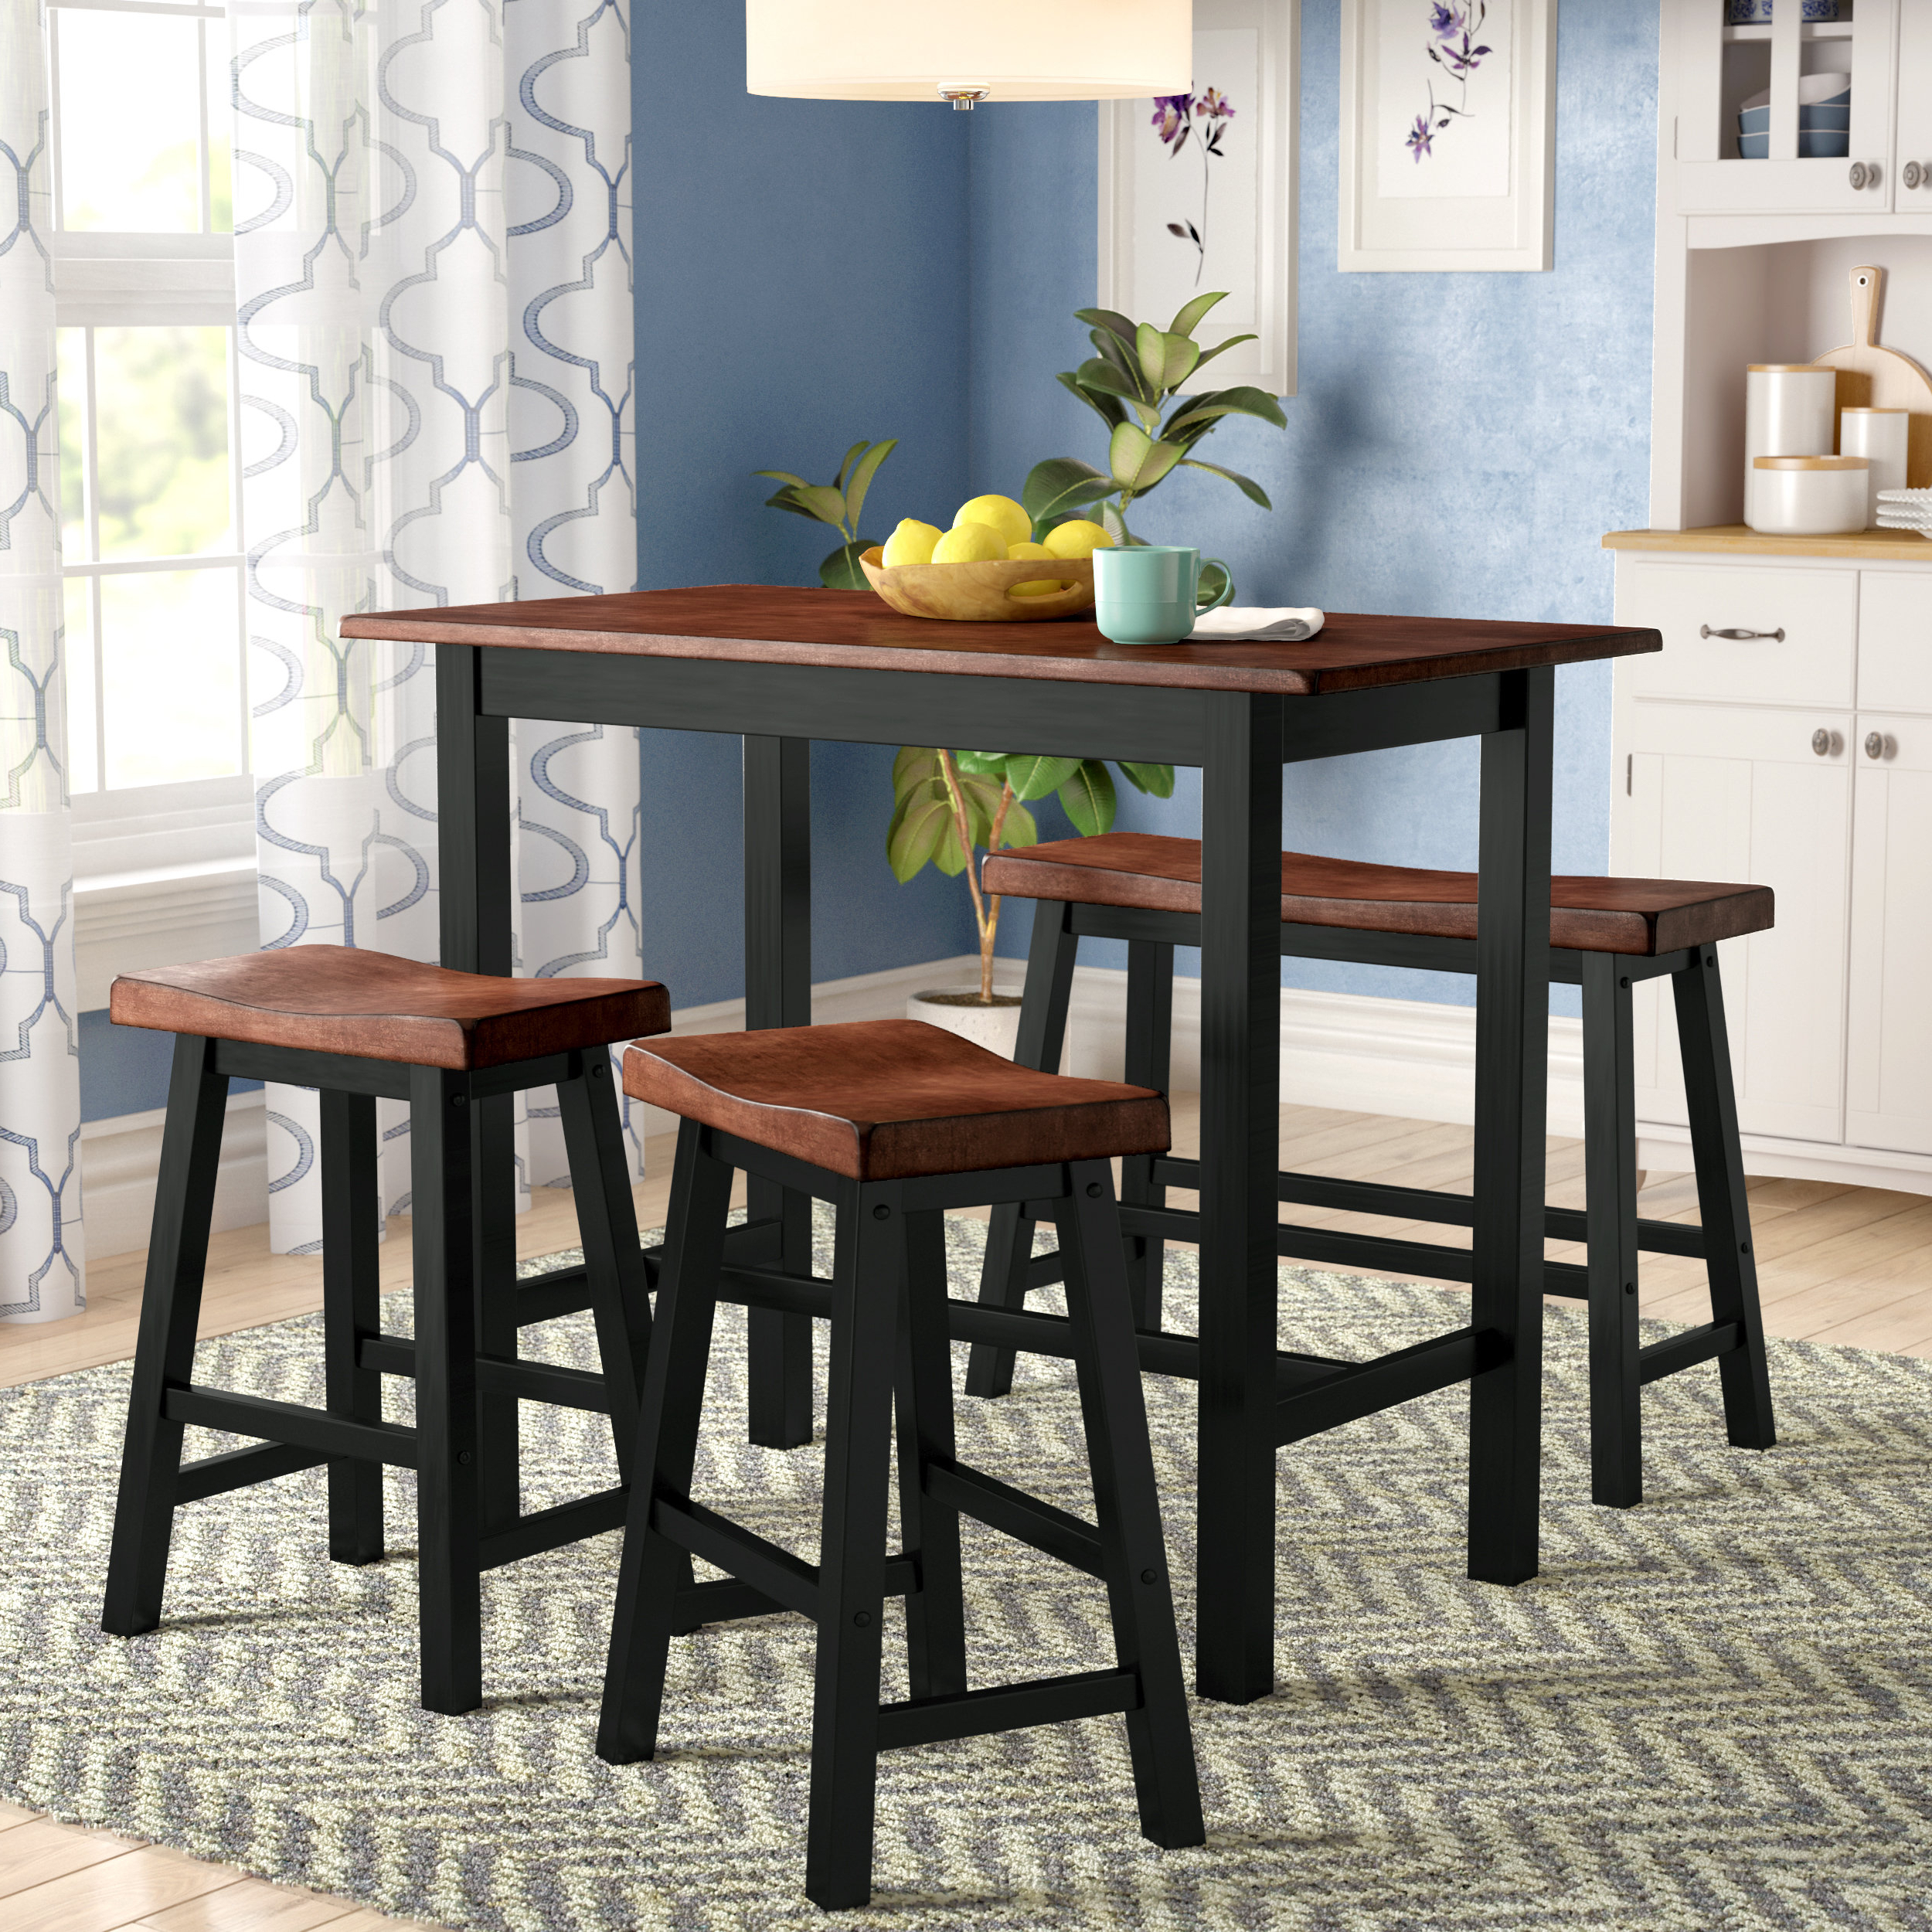 Red Barrel Studio Winsted 4 Piece Counter Height Dining Set regarding 2020 Winsted 4 Piece Counter Height Dining Sets